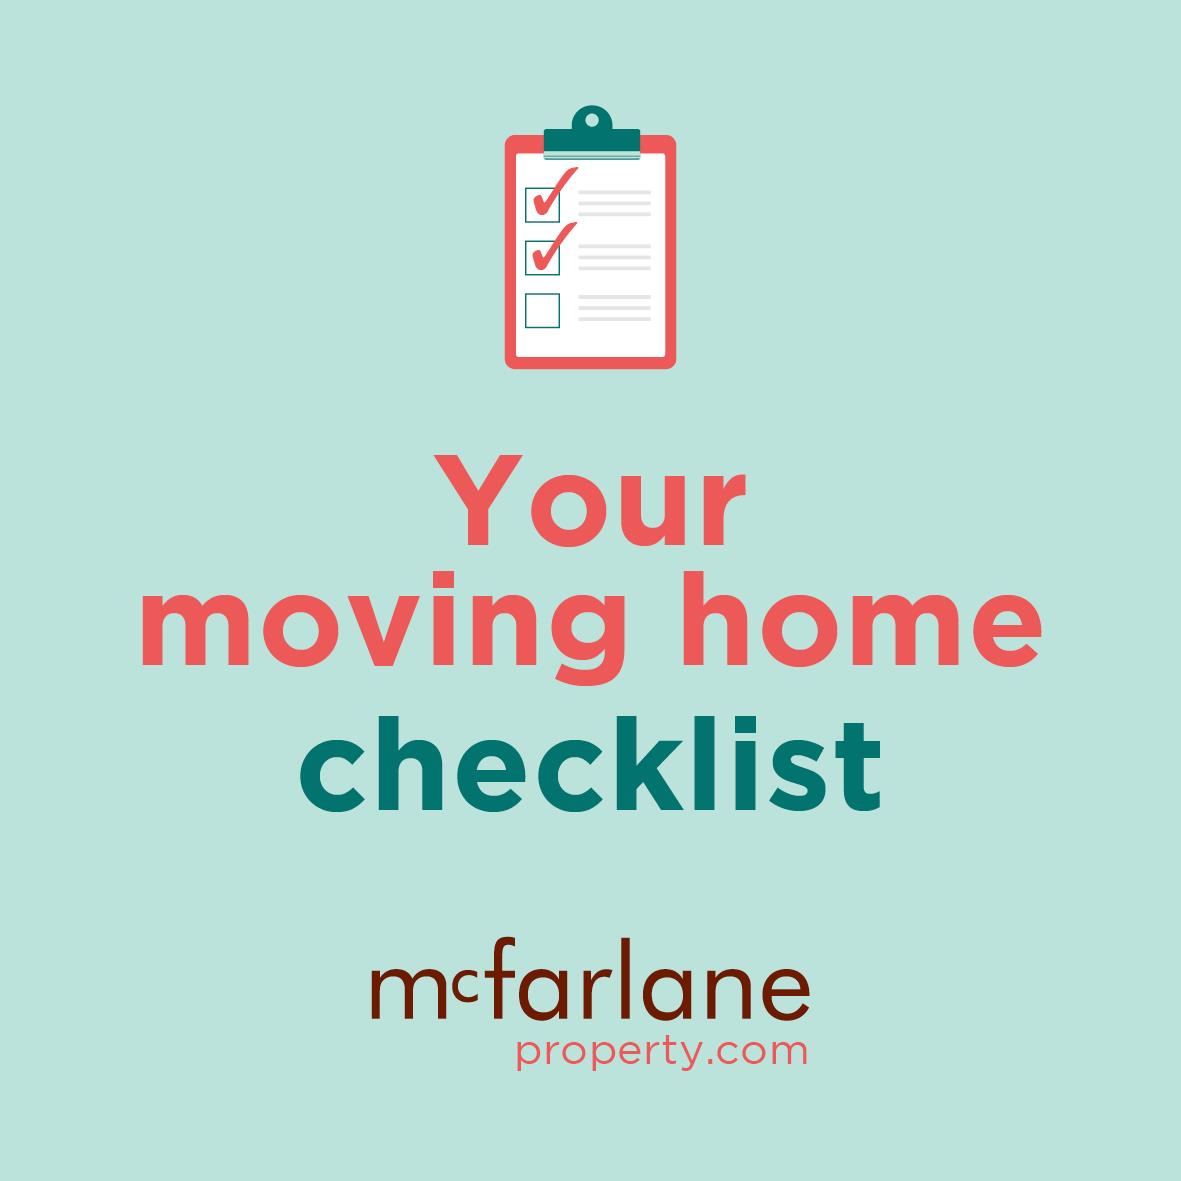 Your moving home checklist